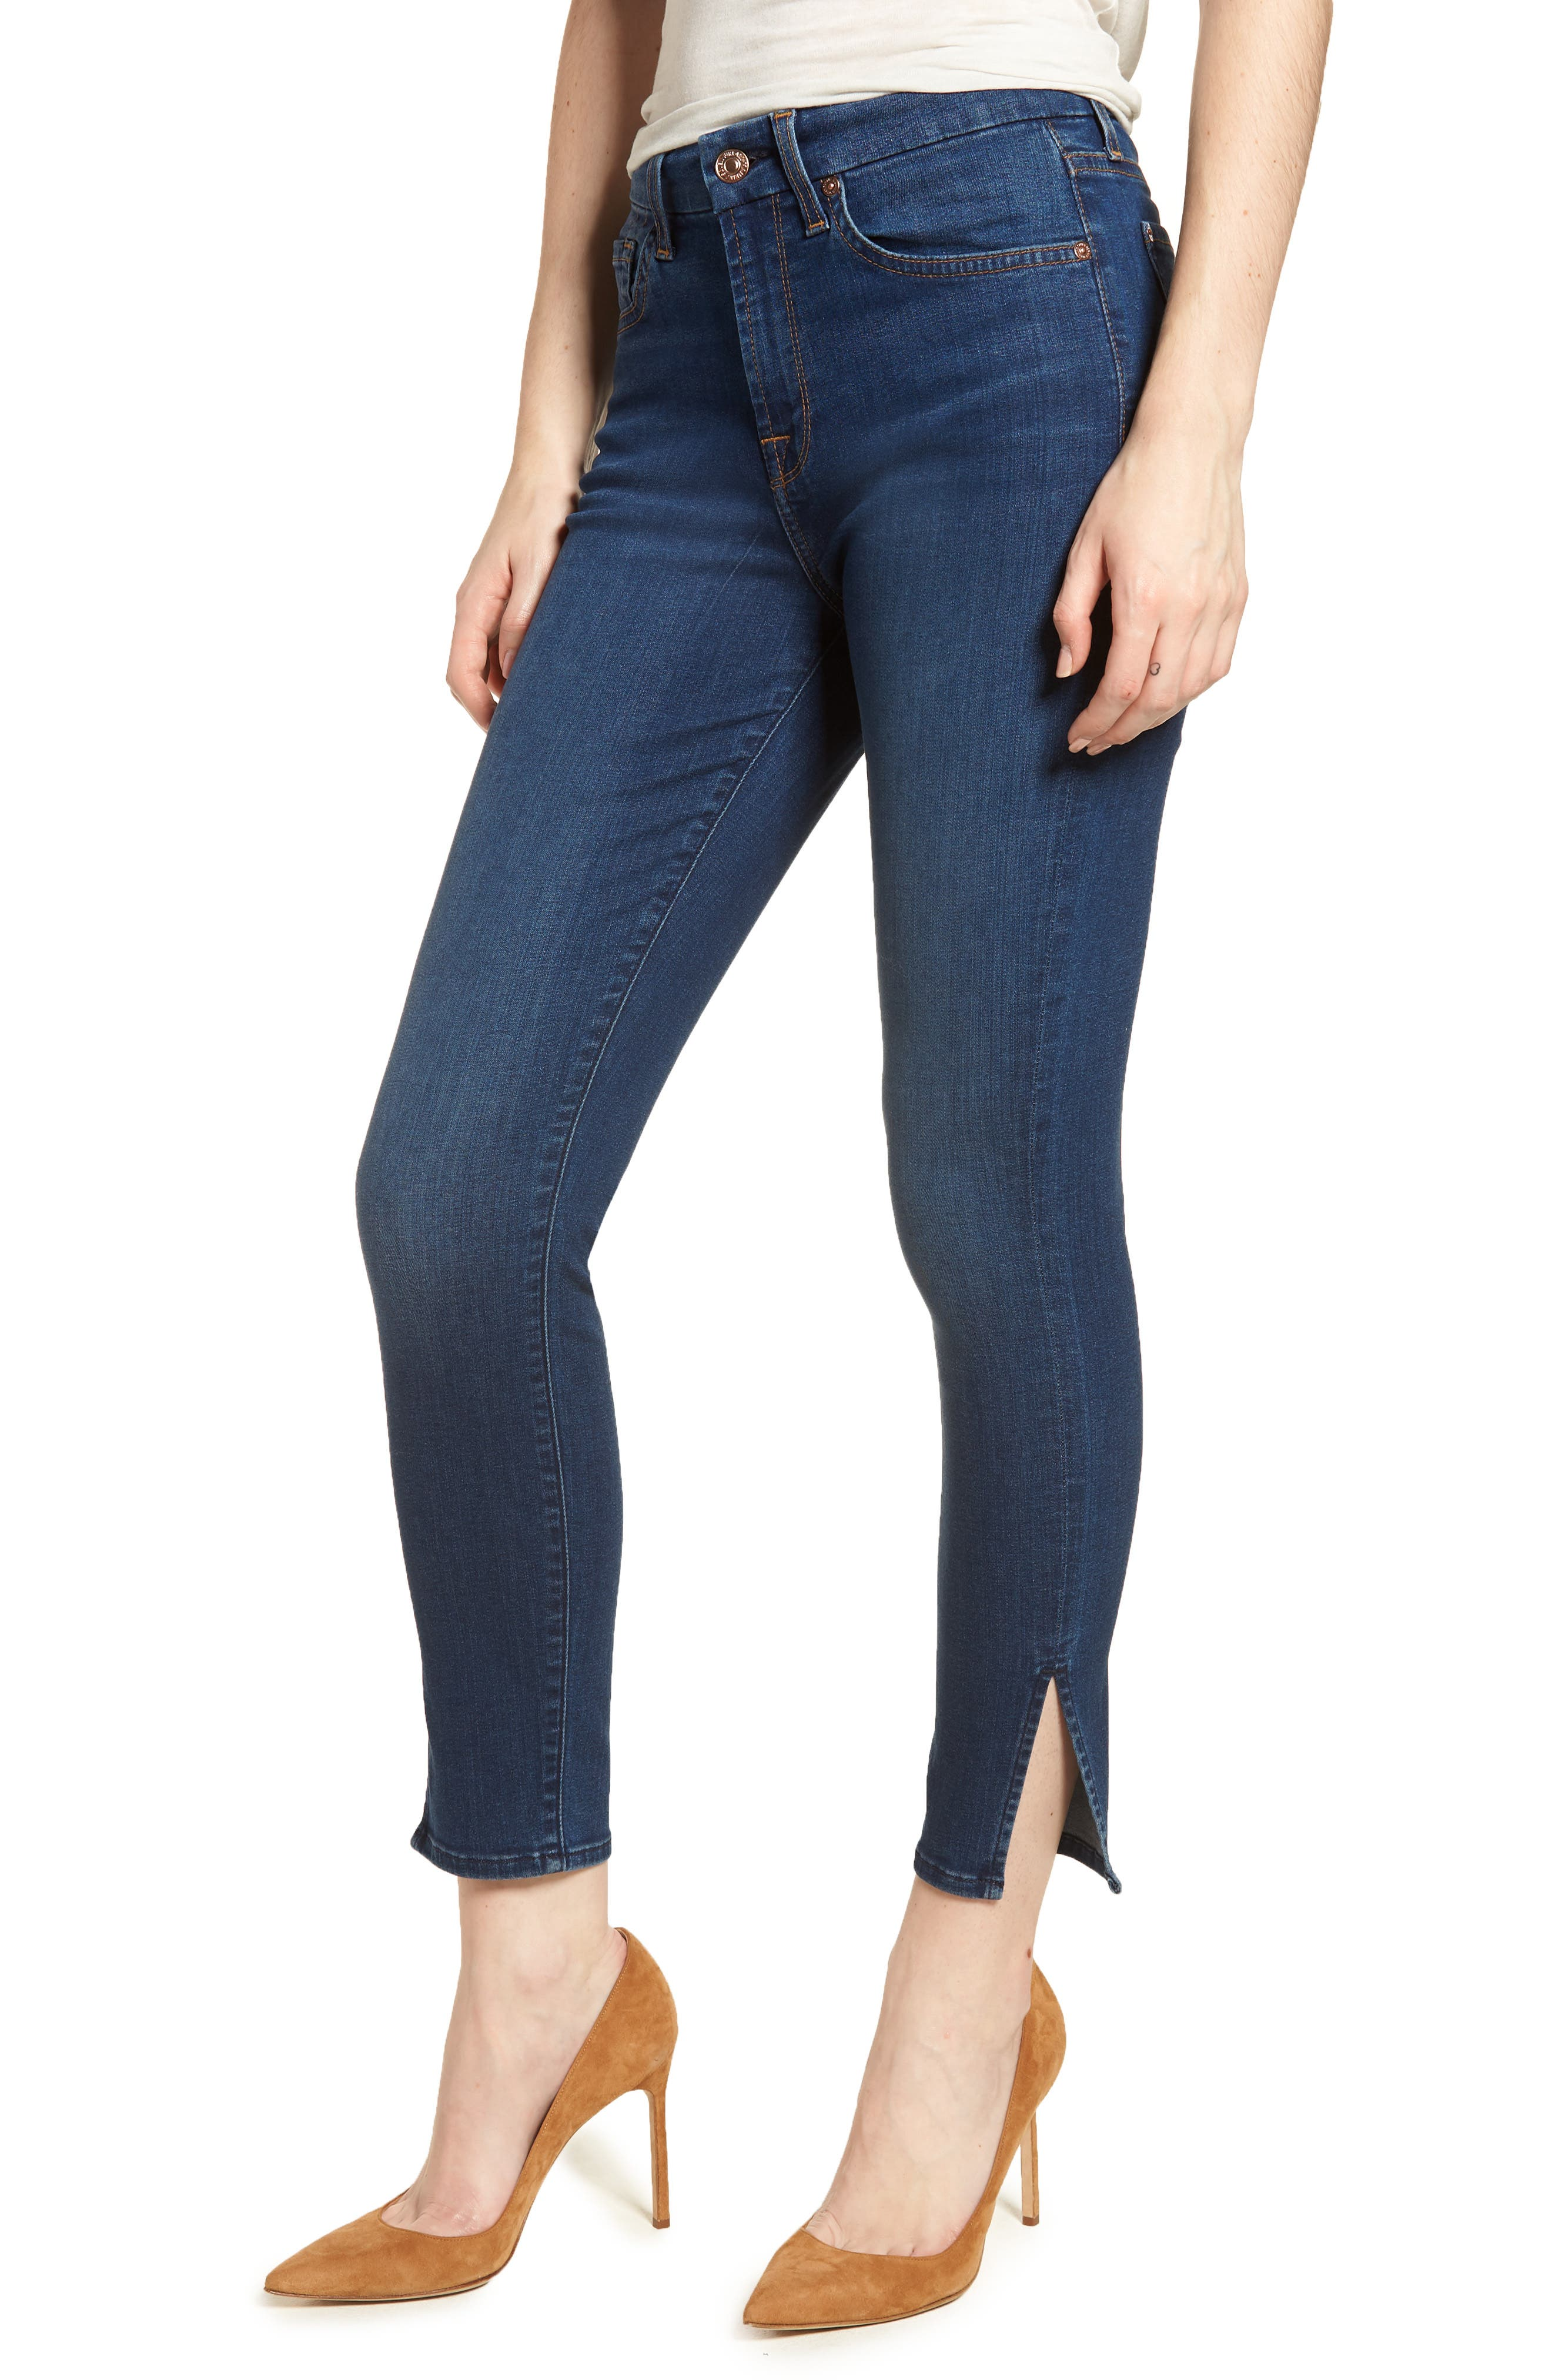 b(air) - Aubrey High Waist Skinny Jeans,                         Main,                         color, 400